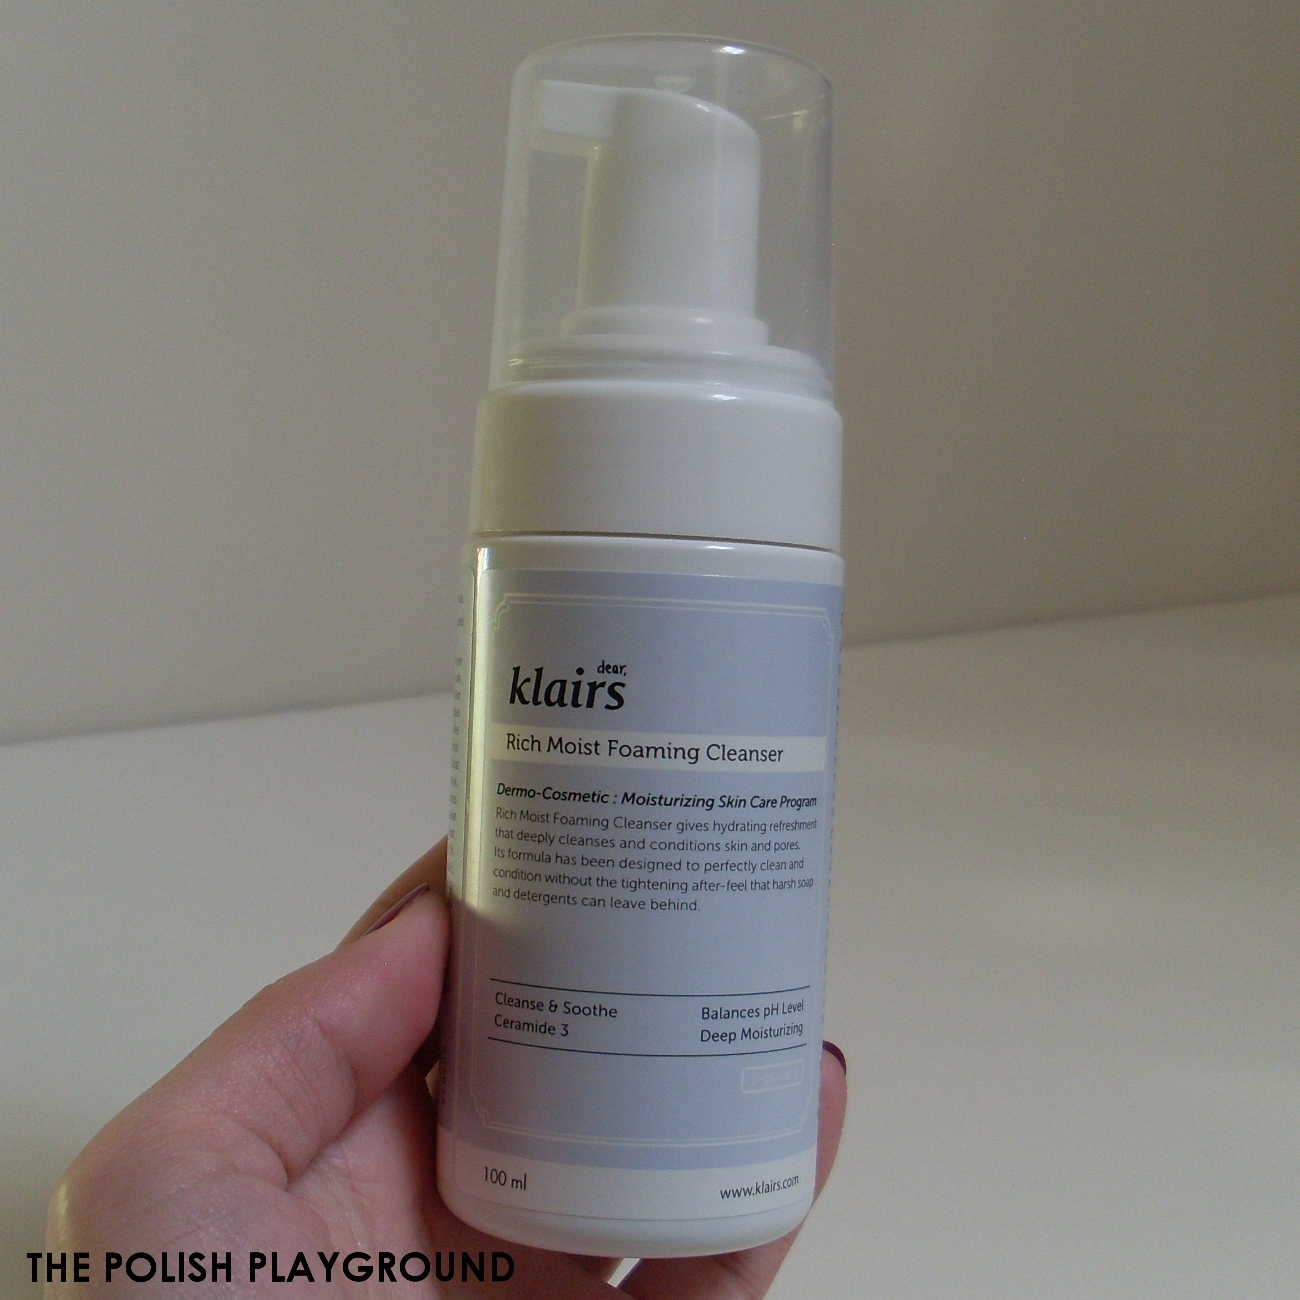 Klairs Rich Moist Foaming Cleanser Review